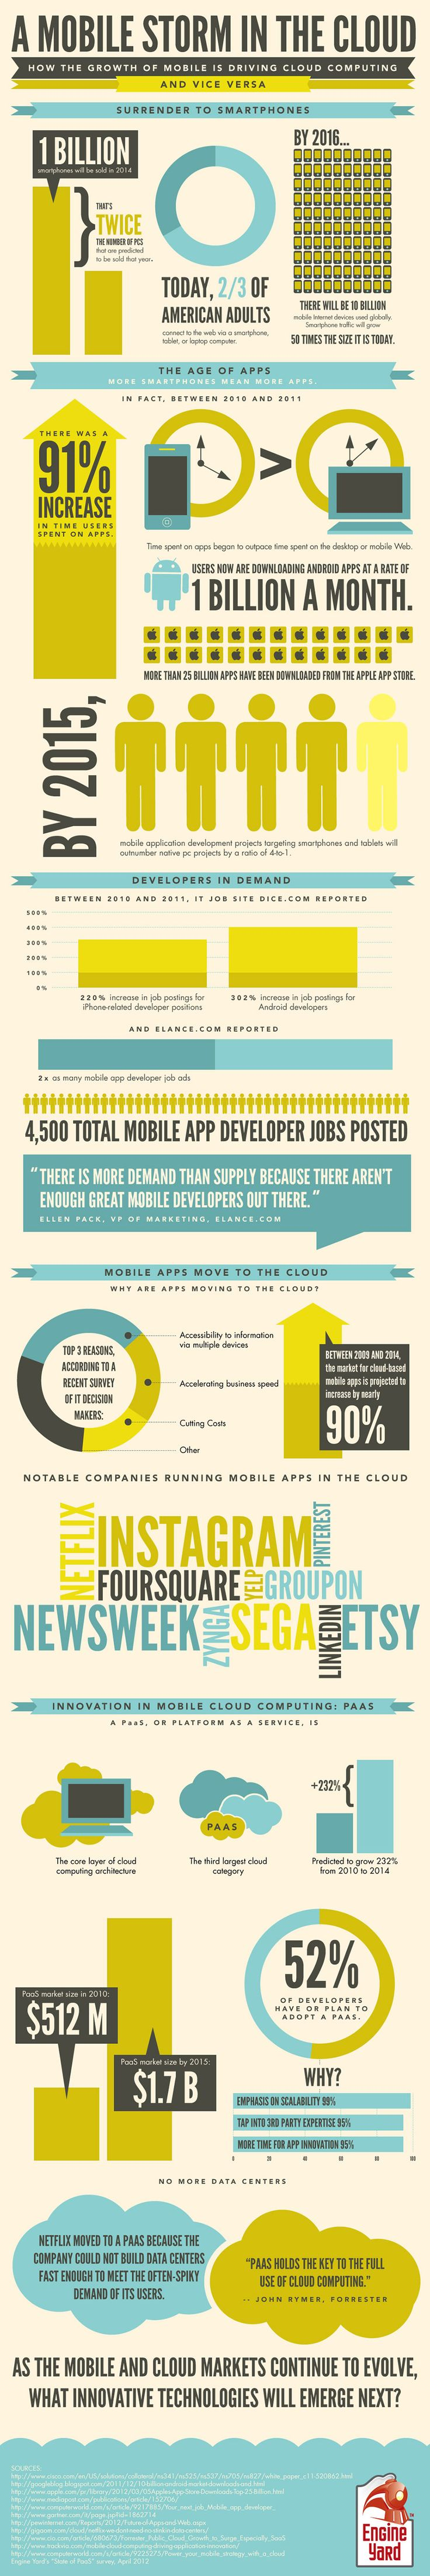 iClarified - Apple News - How the Growth of Mobile is Driving Cloud Computing [Infographic]